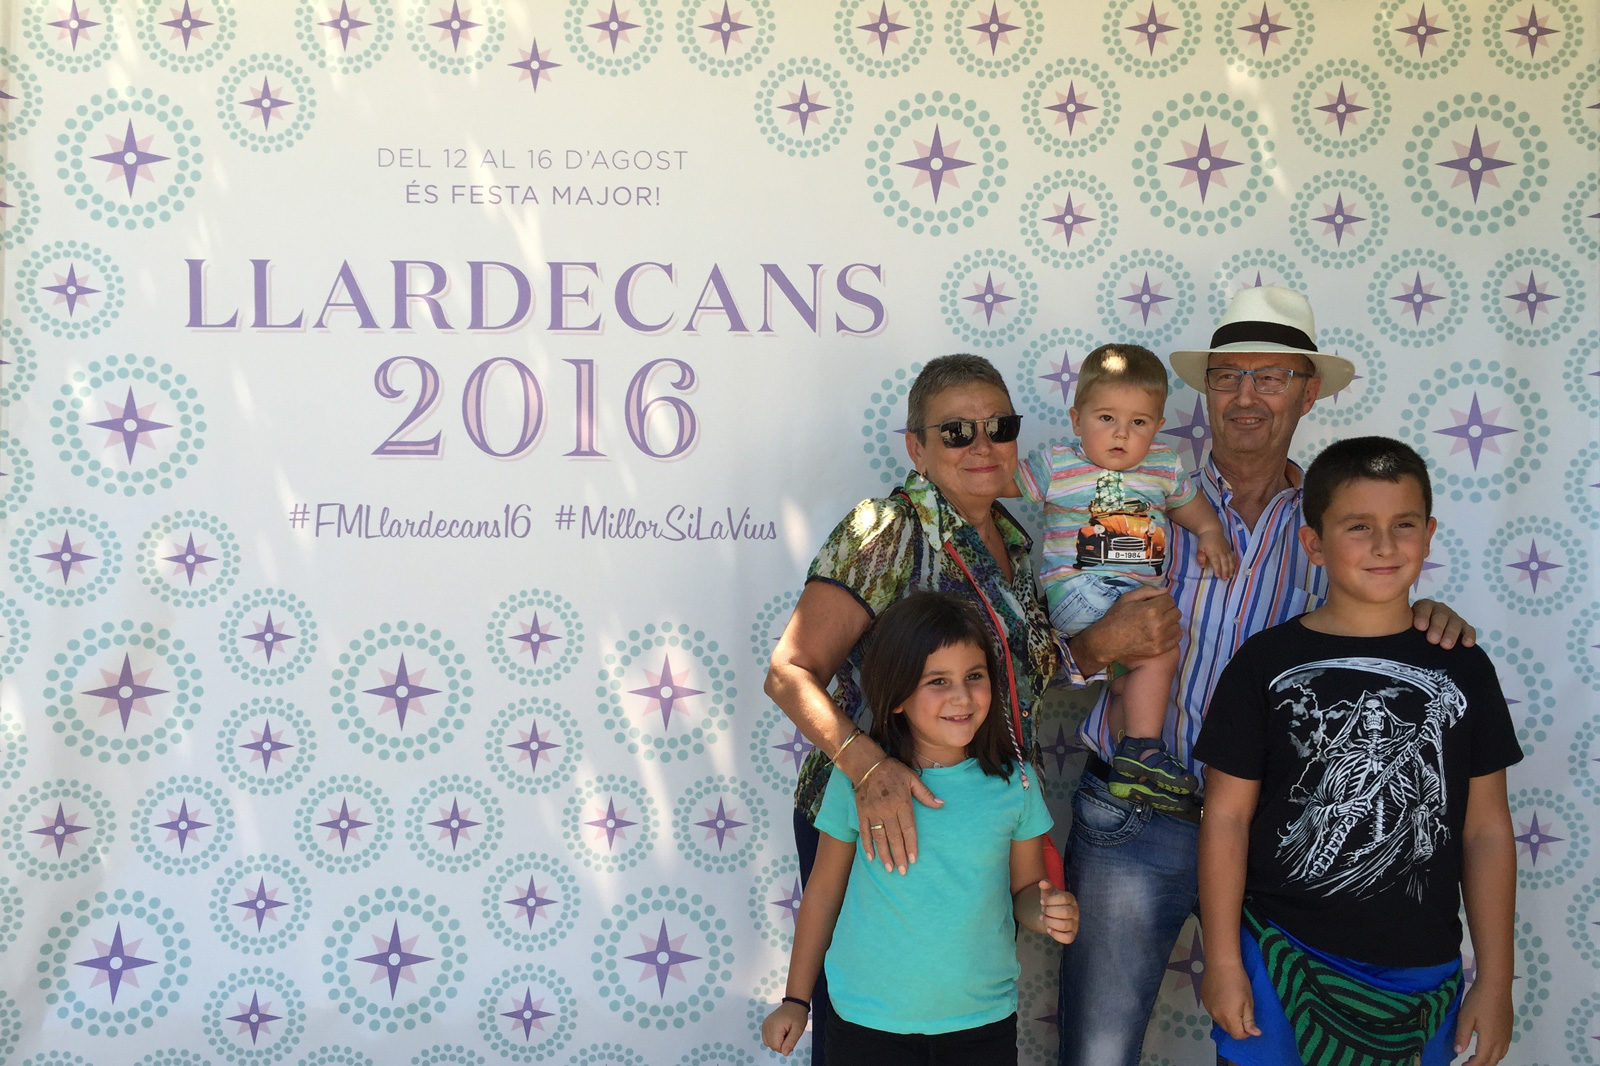 festa-major-llardecans-16-4